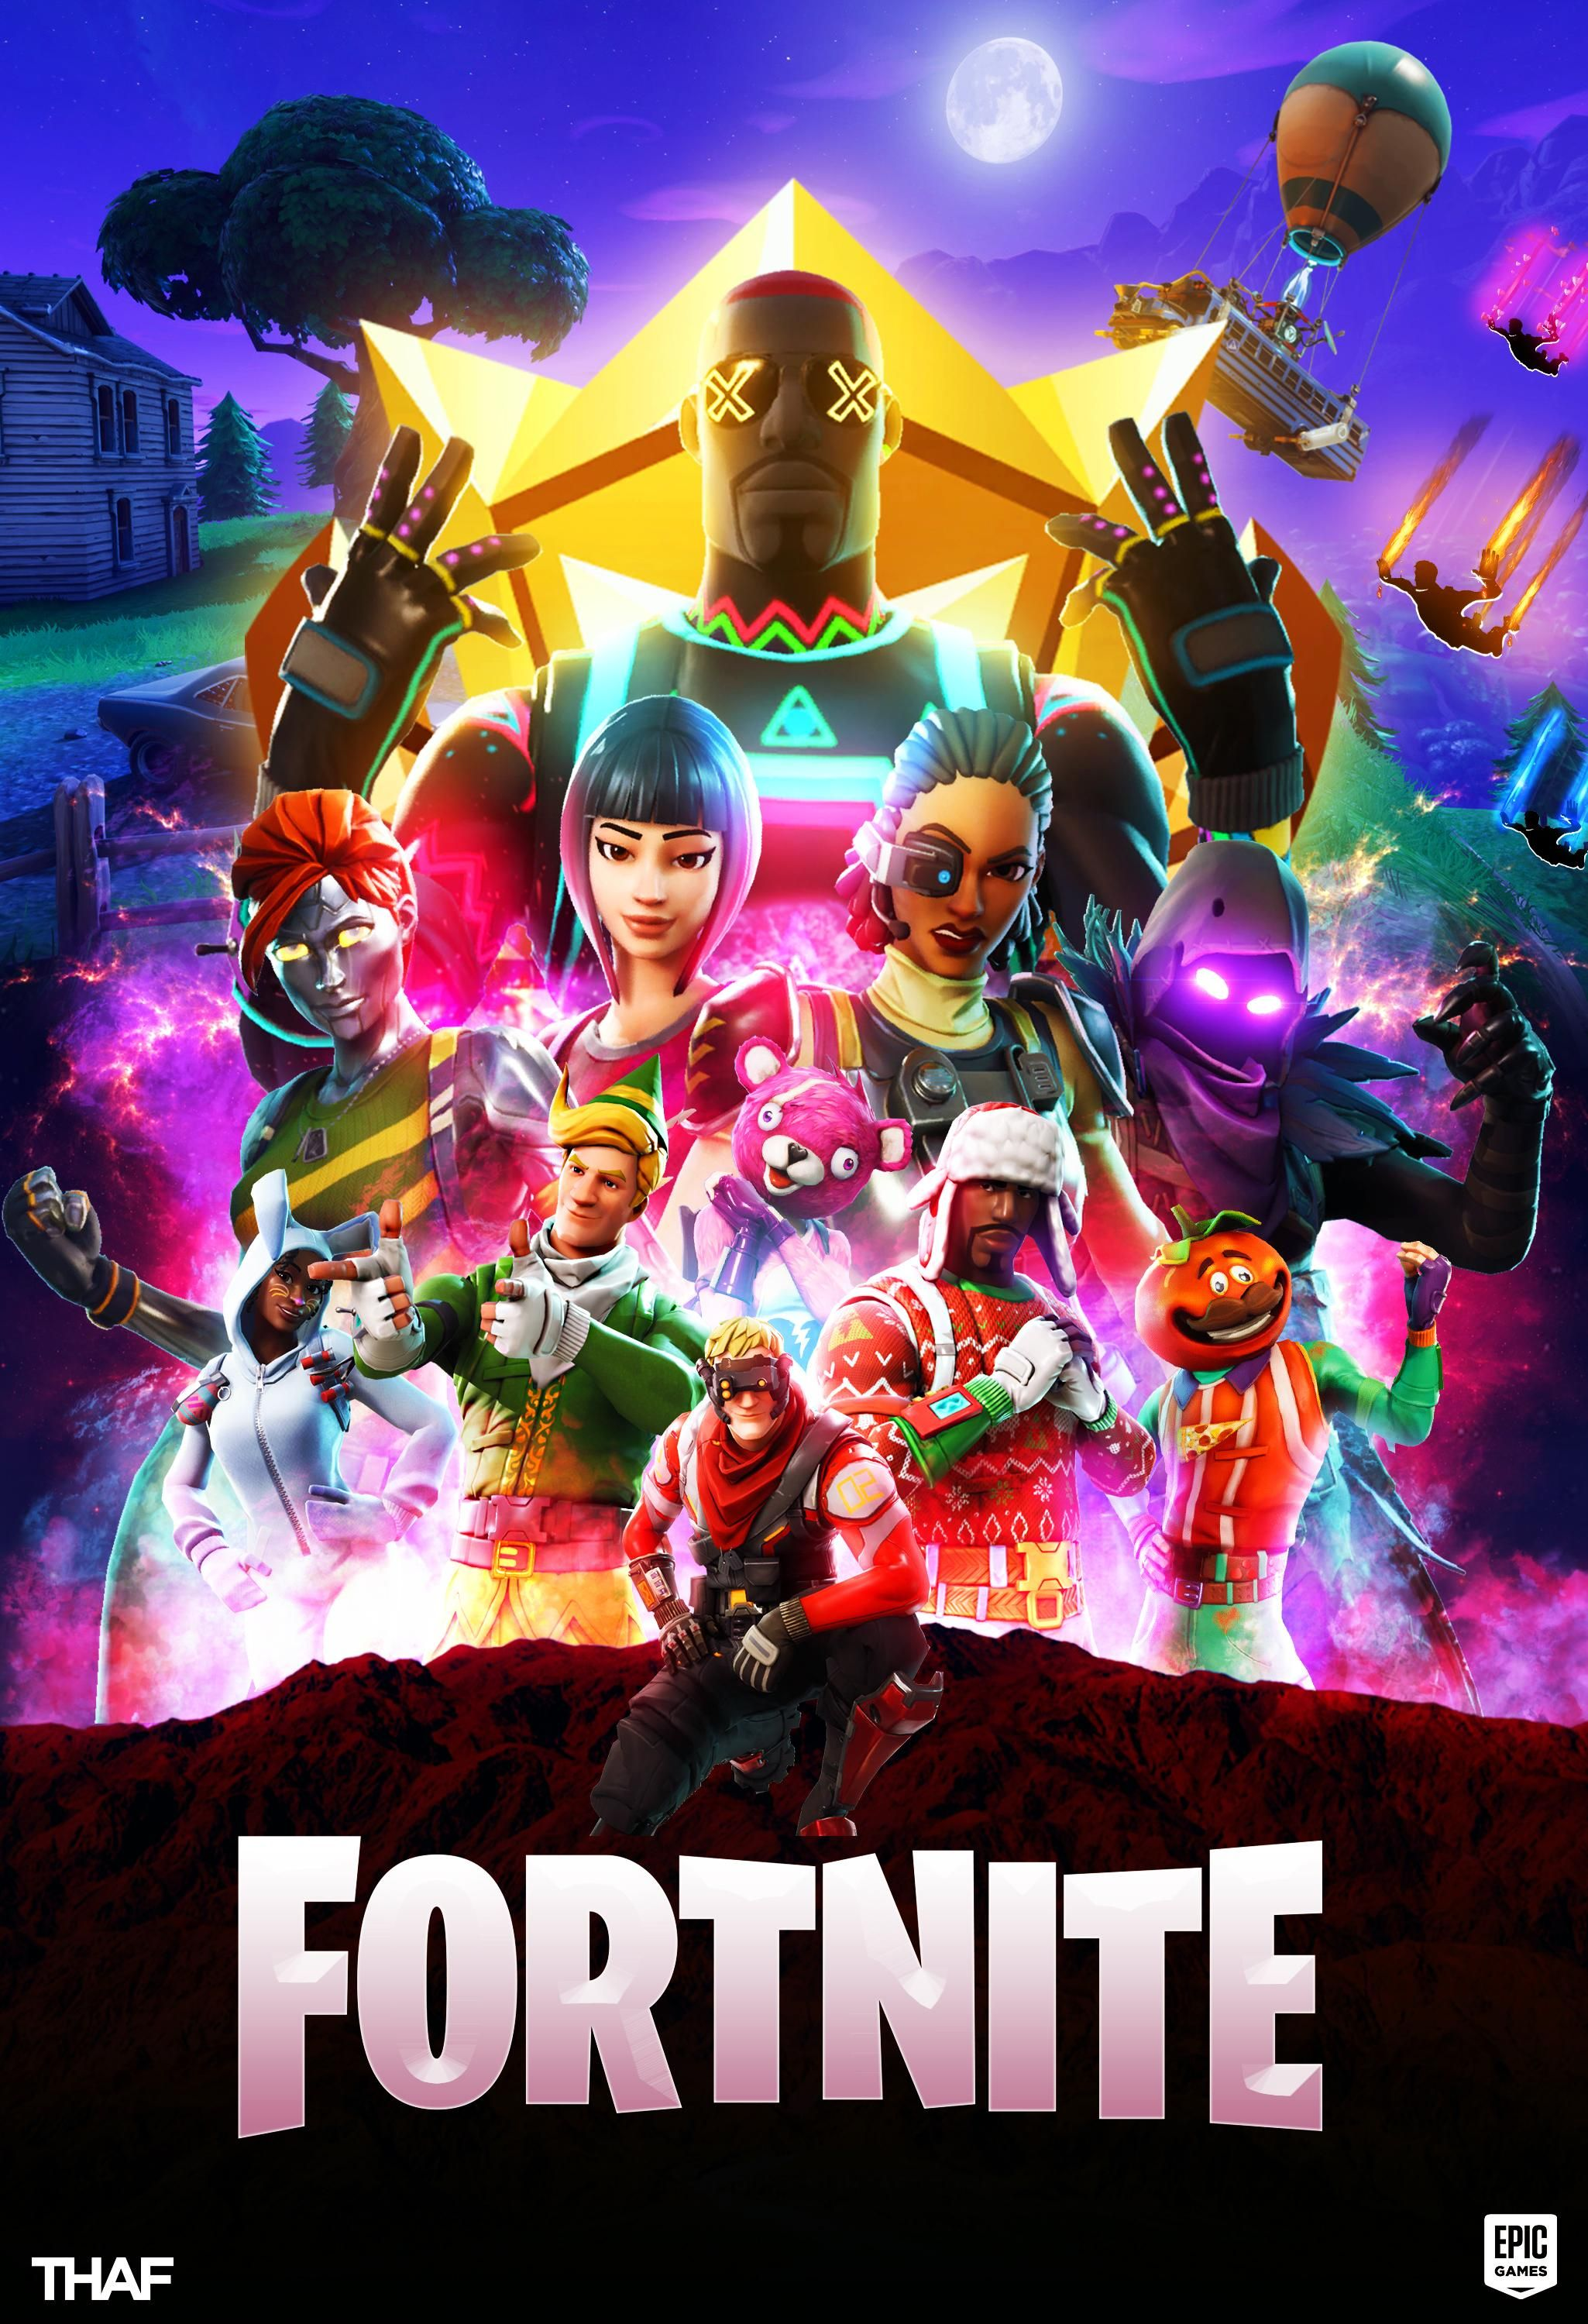 Made This Poster For Fortnite After The Avengers Crossover Was